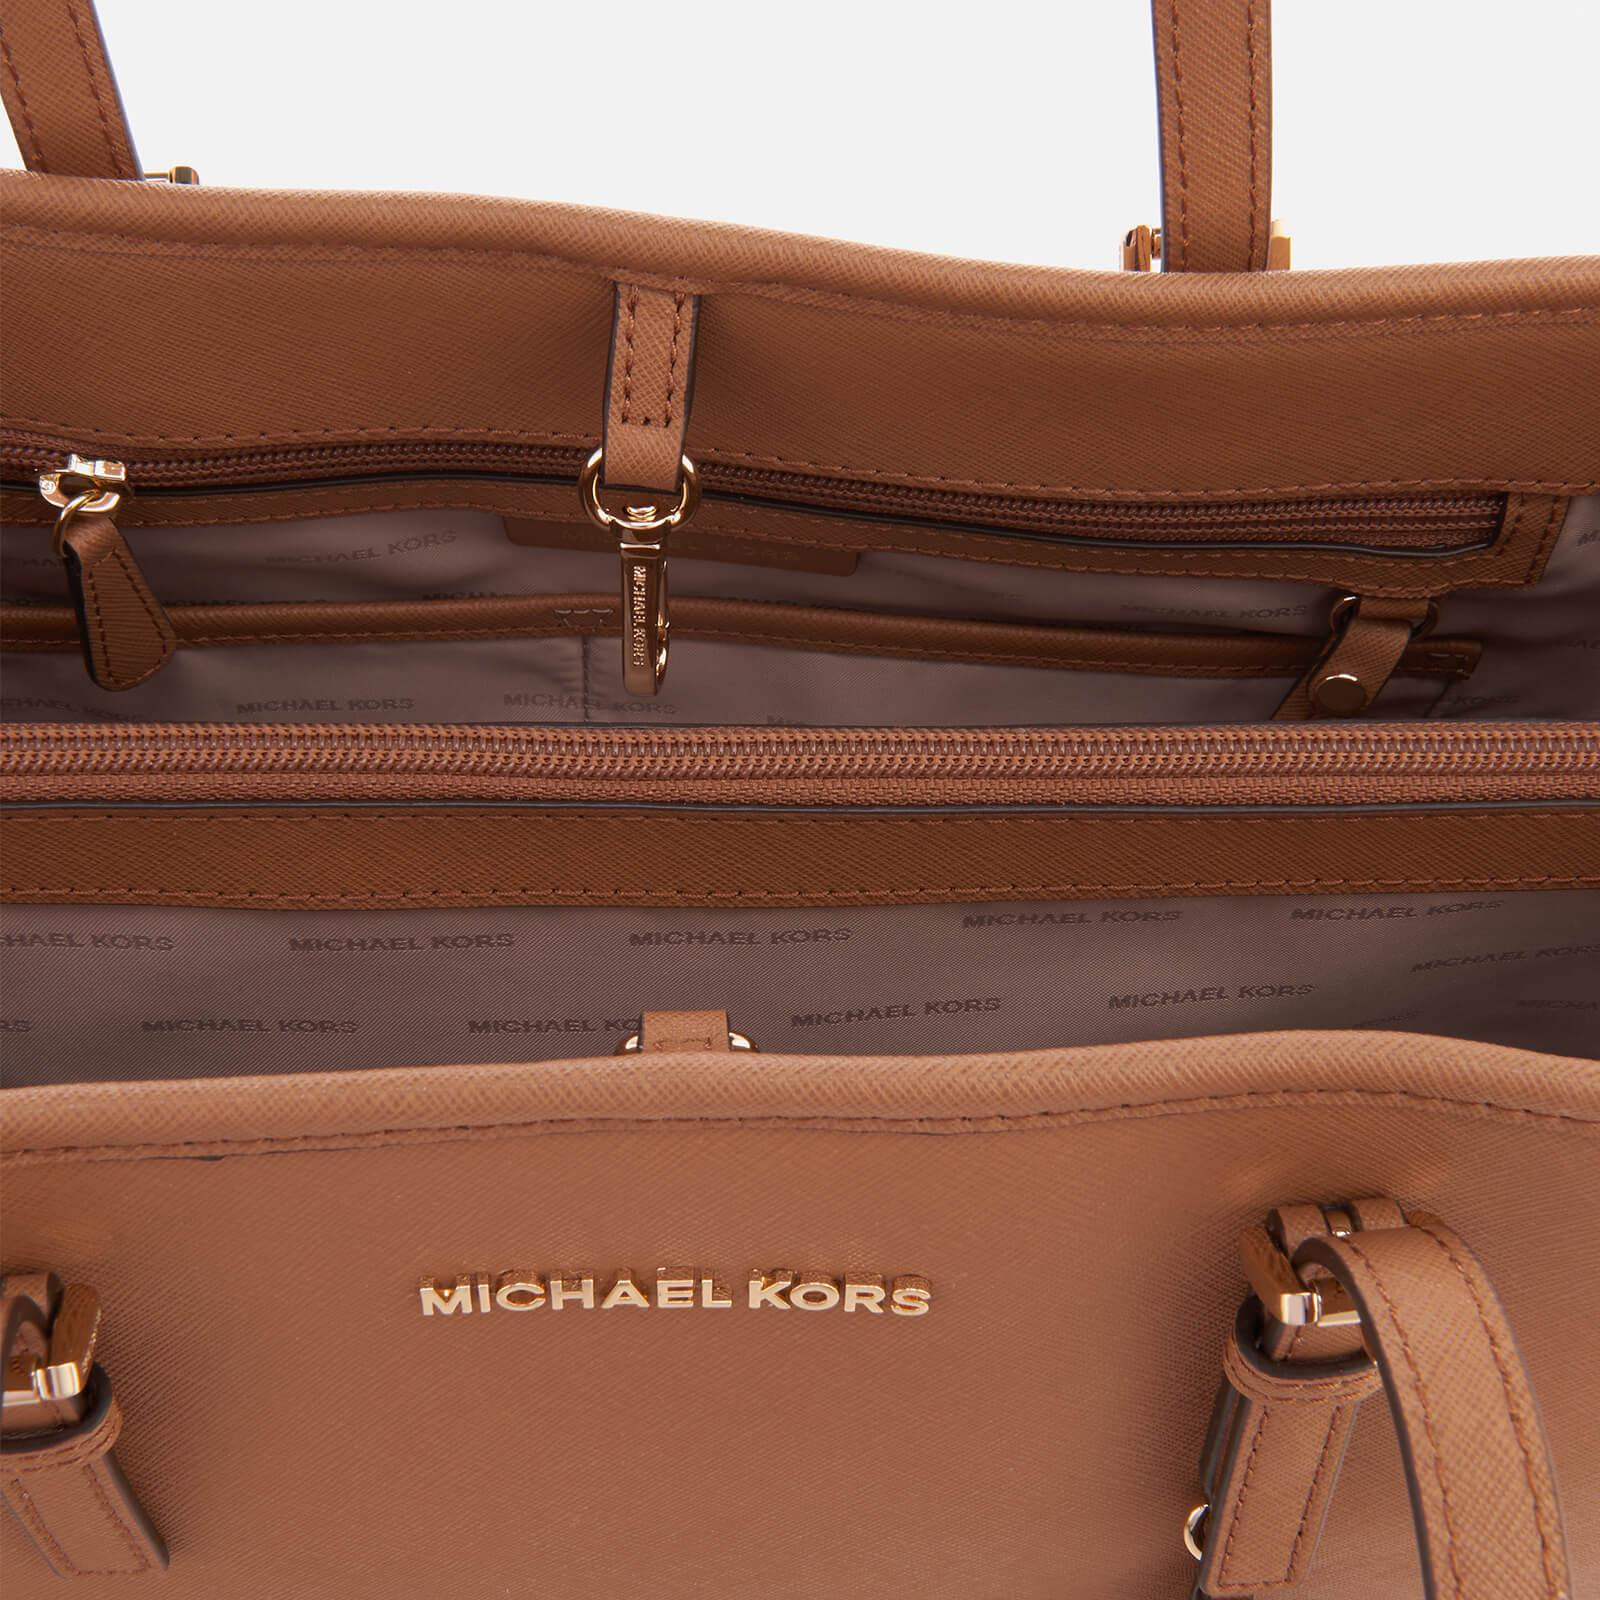 464a7a0e458a73 MICHAEL Michael Kors Jet Set Travel Large East West Tote Bag in ...